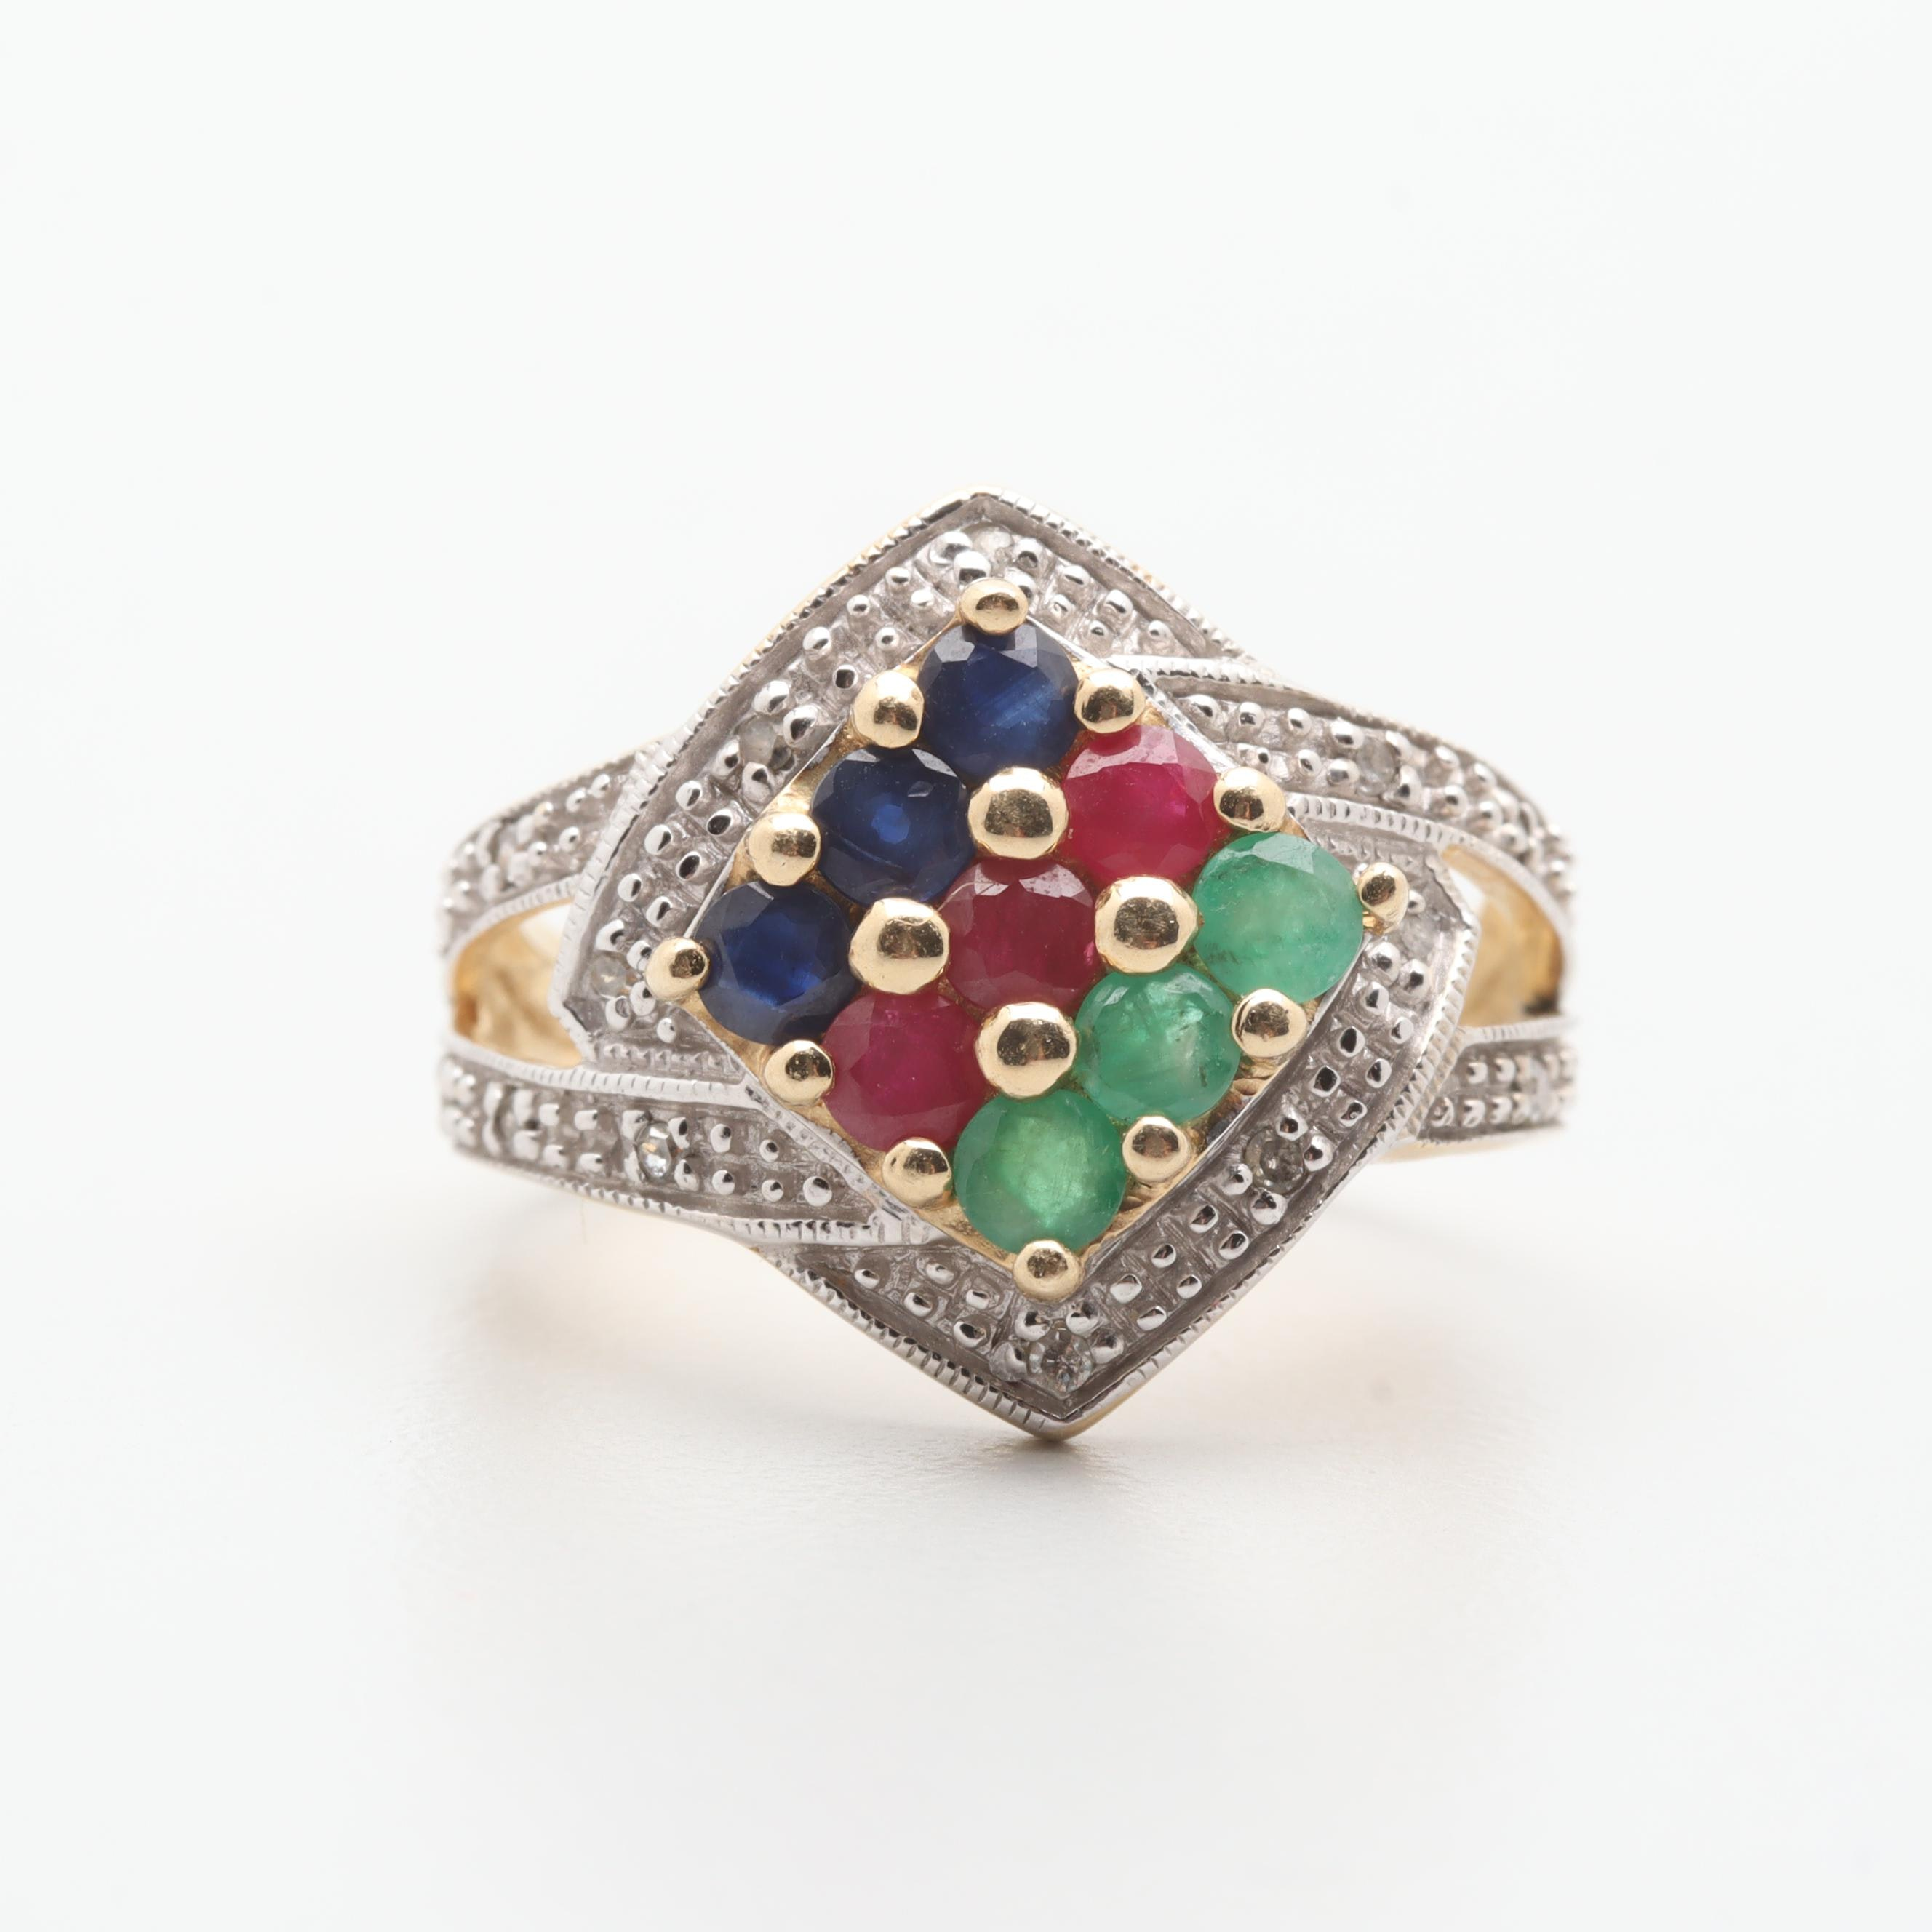 10K Yellow Gold Diamond Ring with Ruby, Emerald and Sapphire